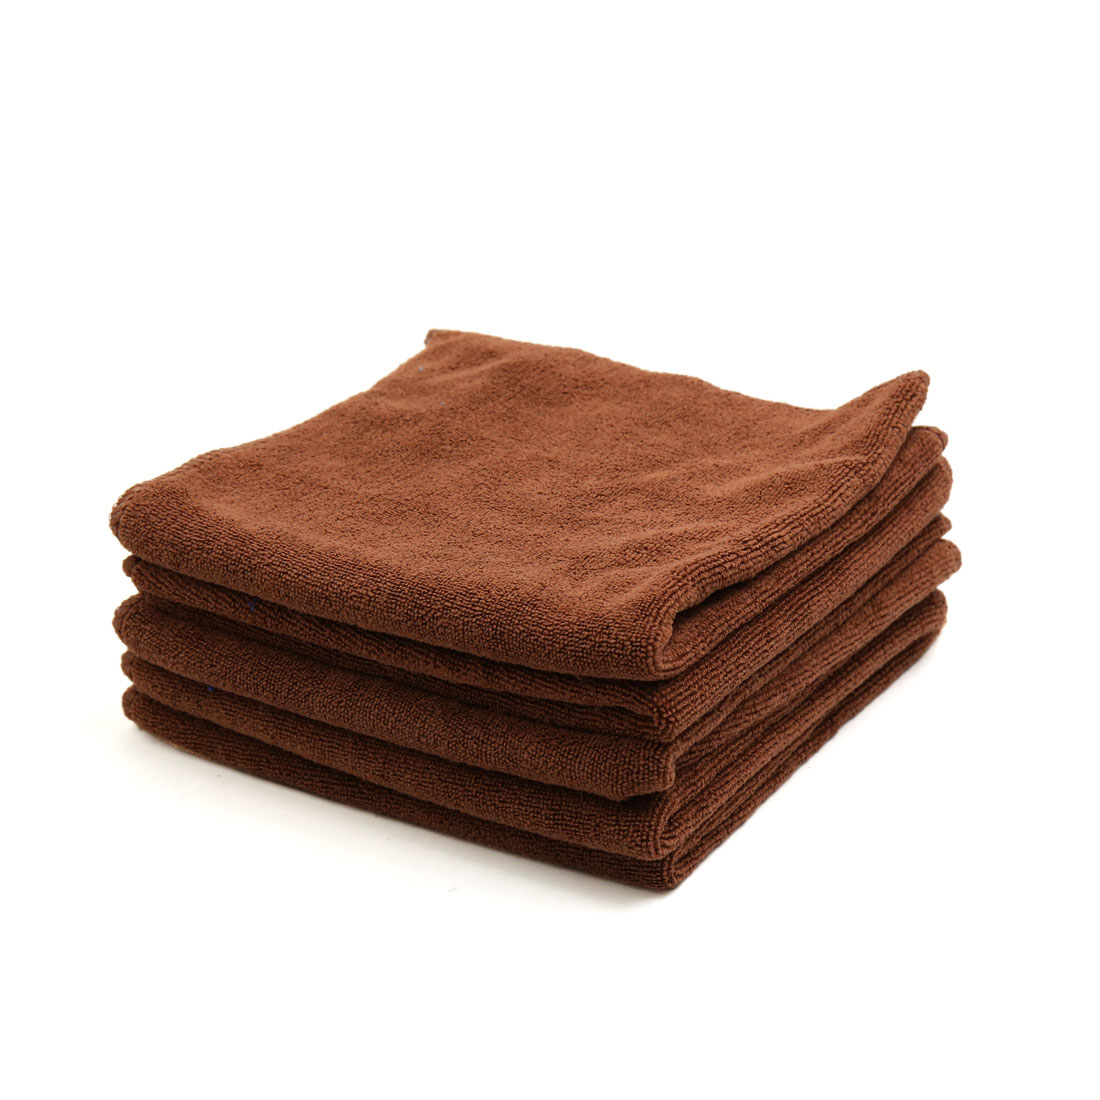 5 Pcs Water Absorbent Car Clean Cloth Towel Protective for Auto Vehicle Car Coffee Color